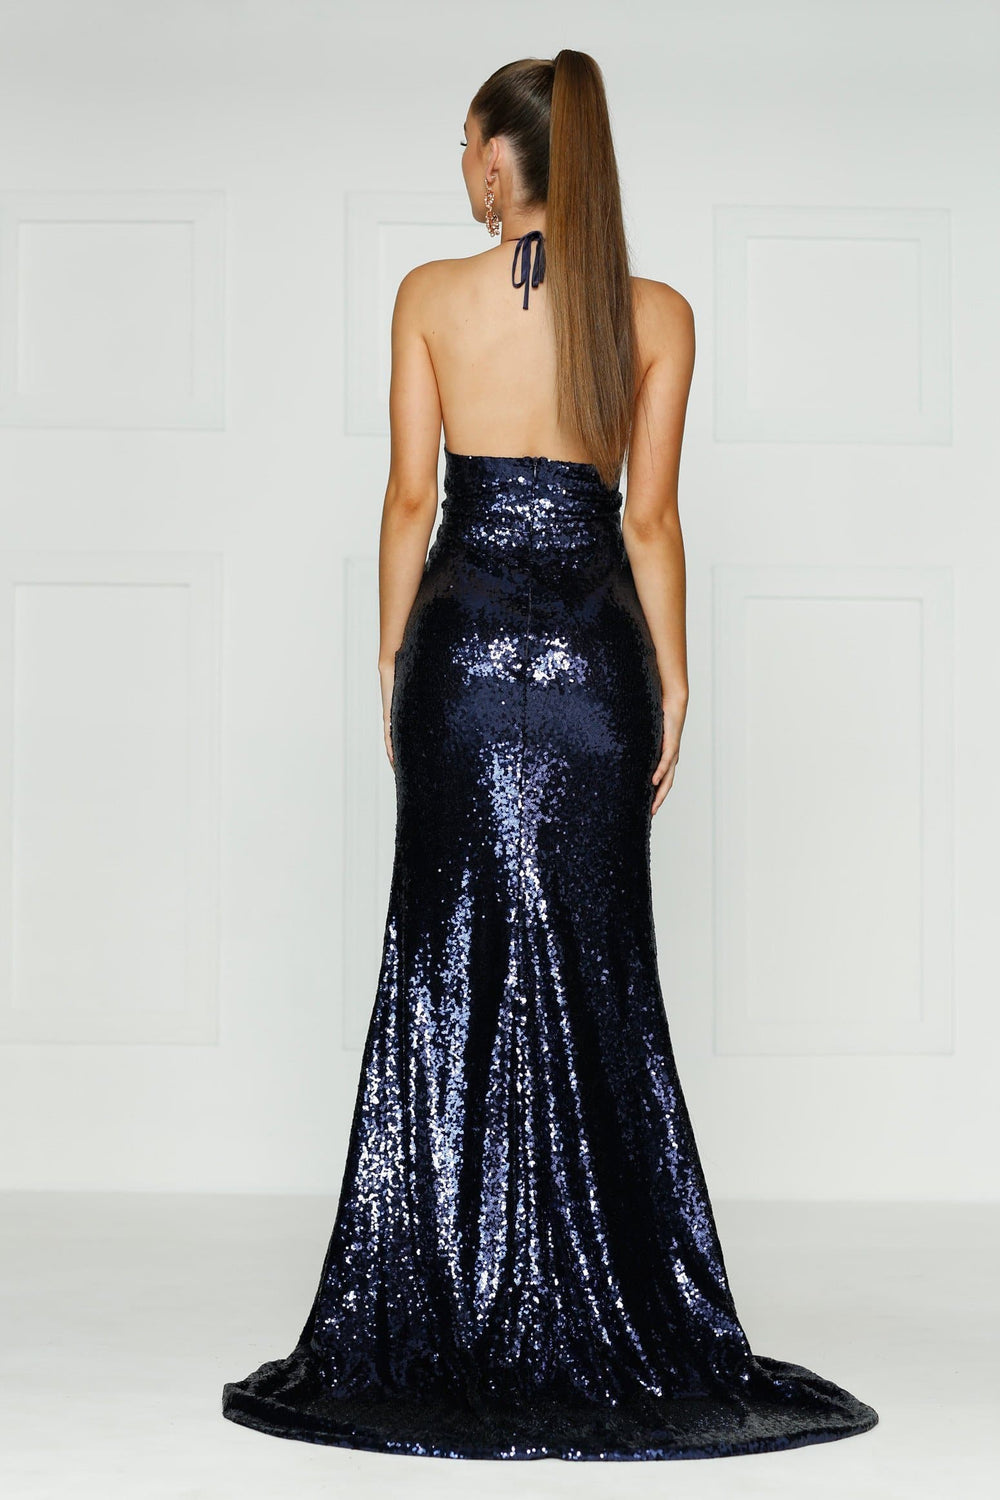 A&N Kylie- Navy Sequin Dress with Low Back and Side Slit